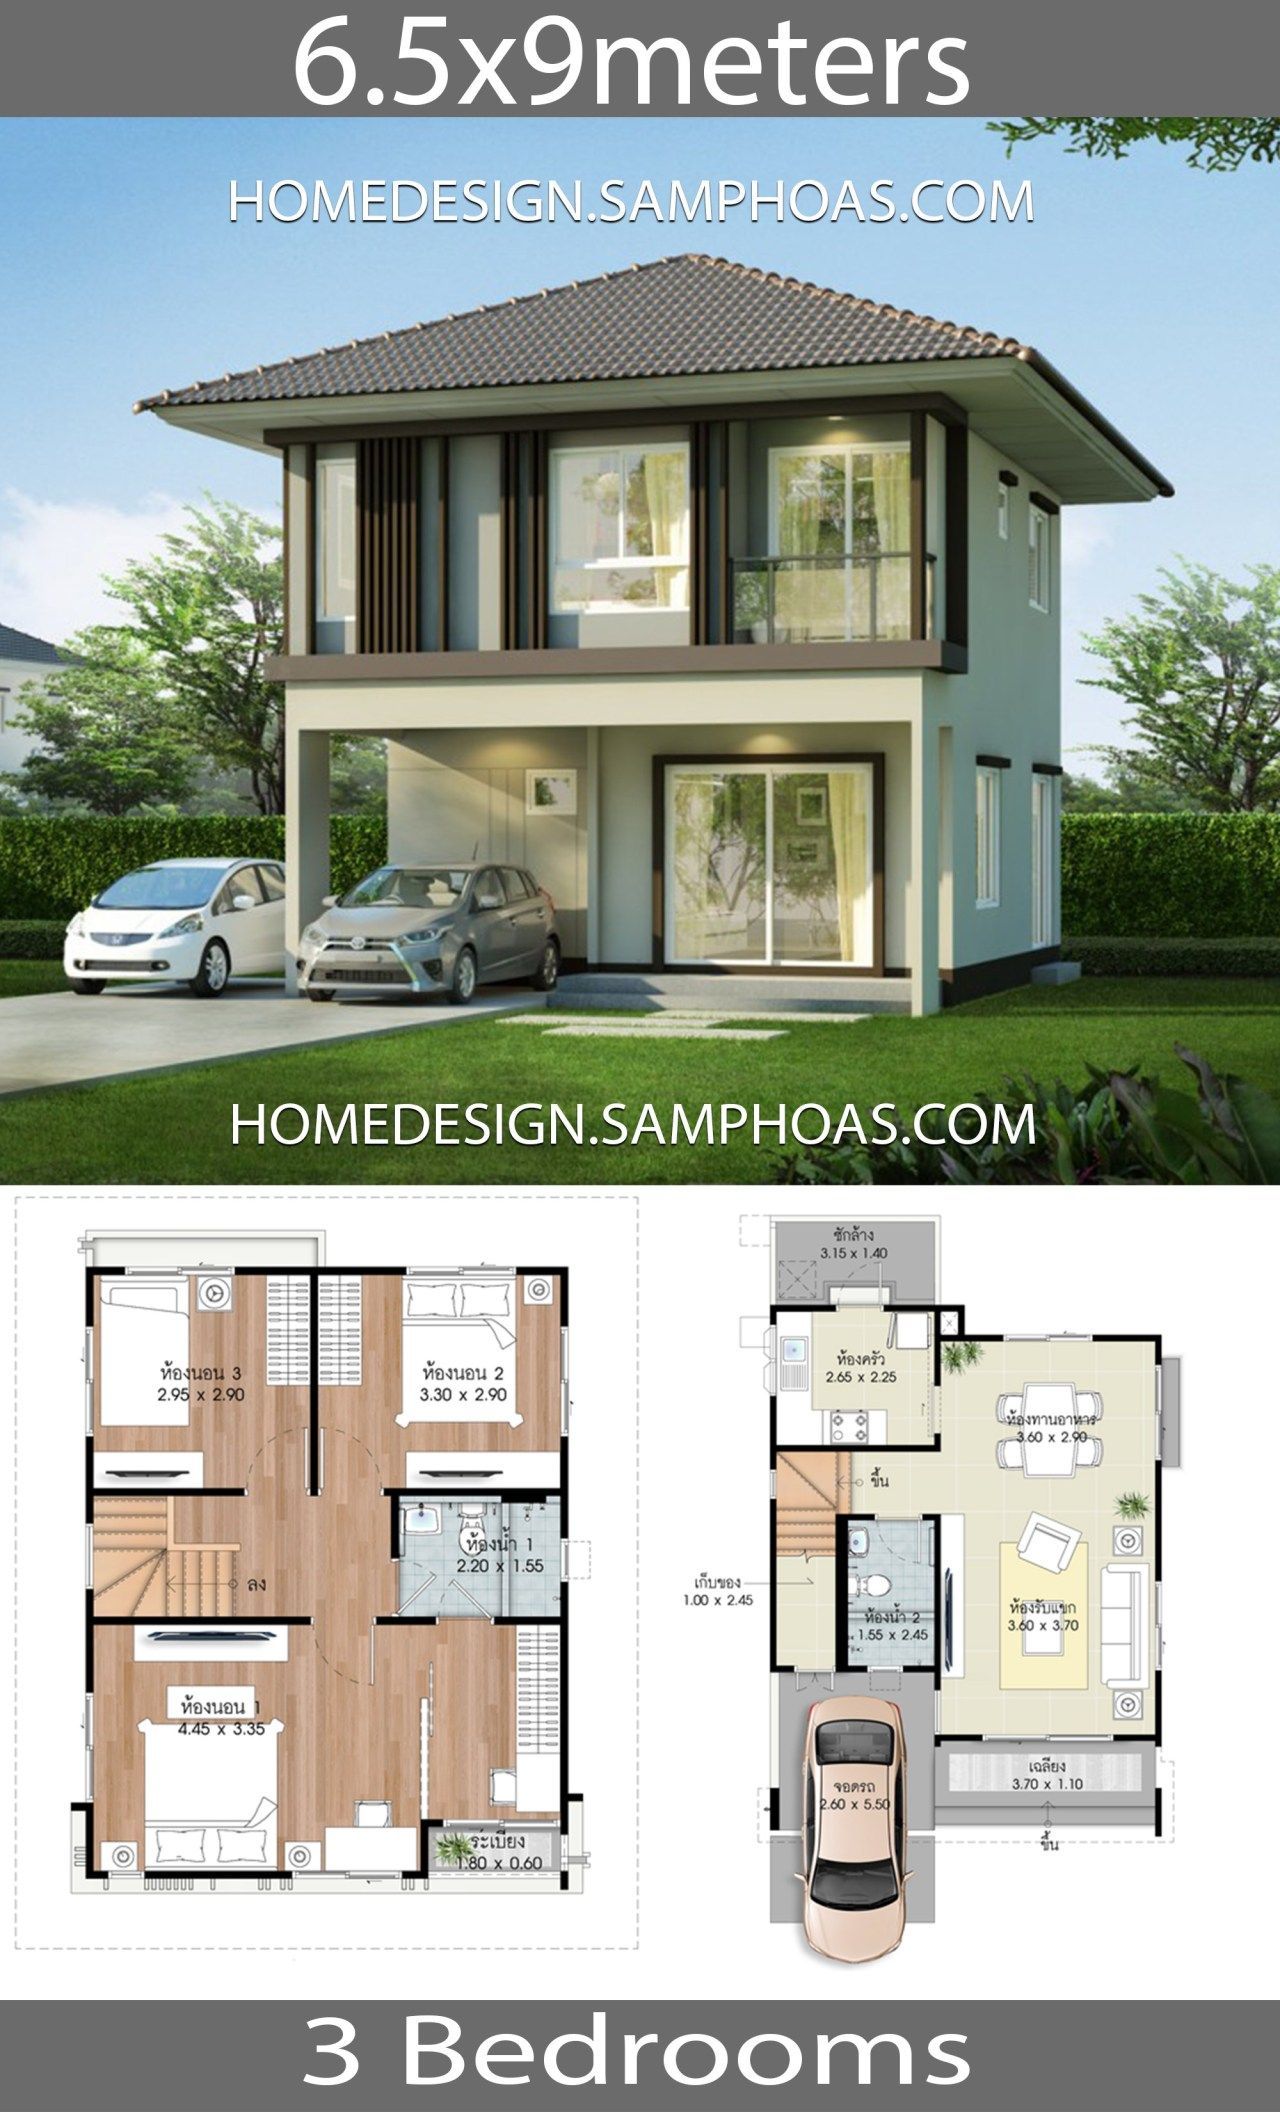 Home Design Plans 6 5x9m With 3 Bedrooms Home Ideas Beautiful House Plans House Plans House Design